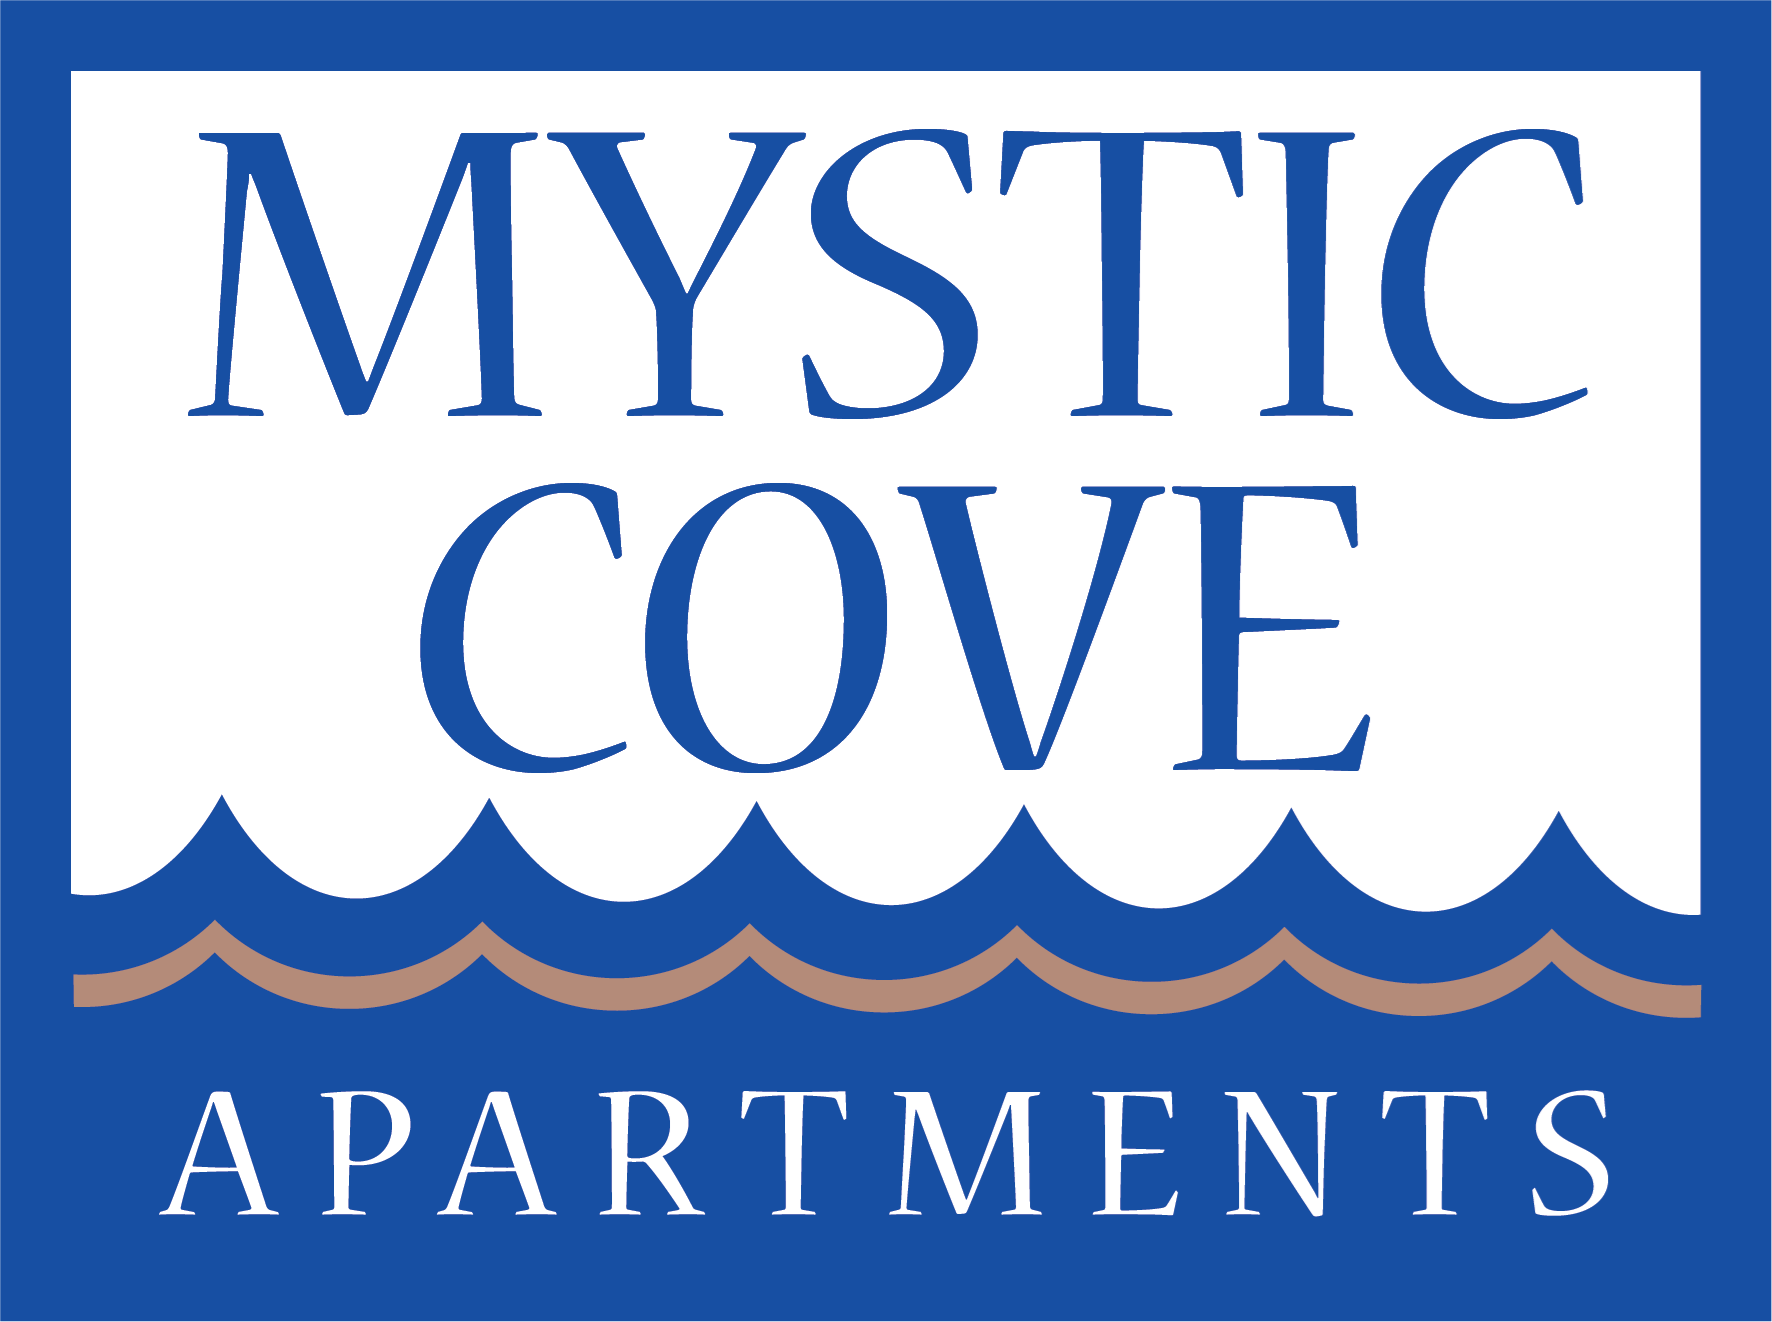 Mystic Cove Apartments for rent in Oviedo, FL. Make this community your new home or visit other ConcordRENTS communities at ConcordRENTS.com. Logo